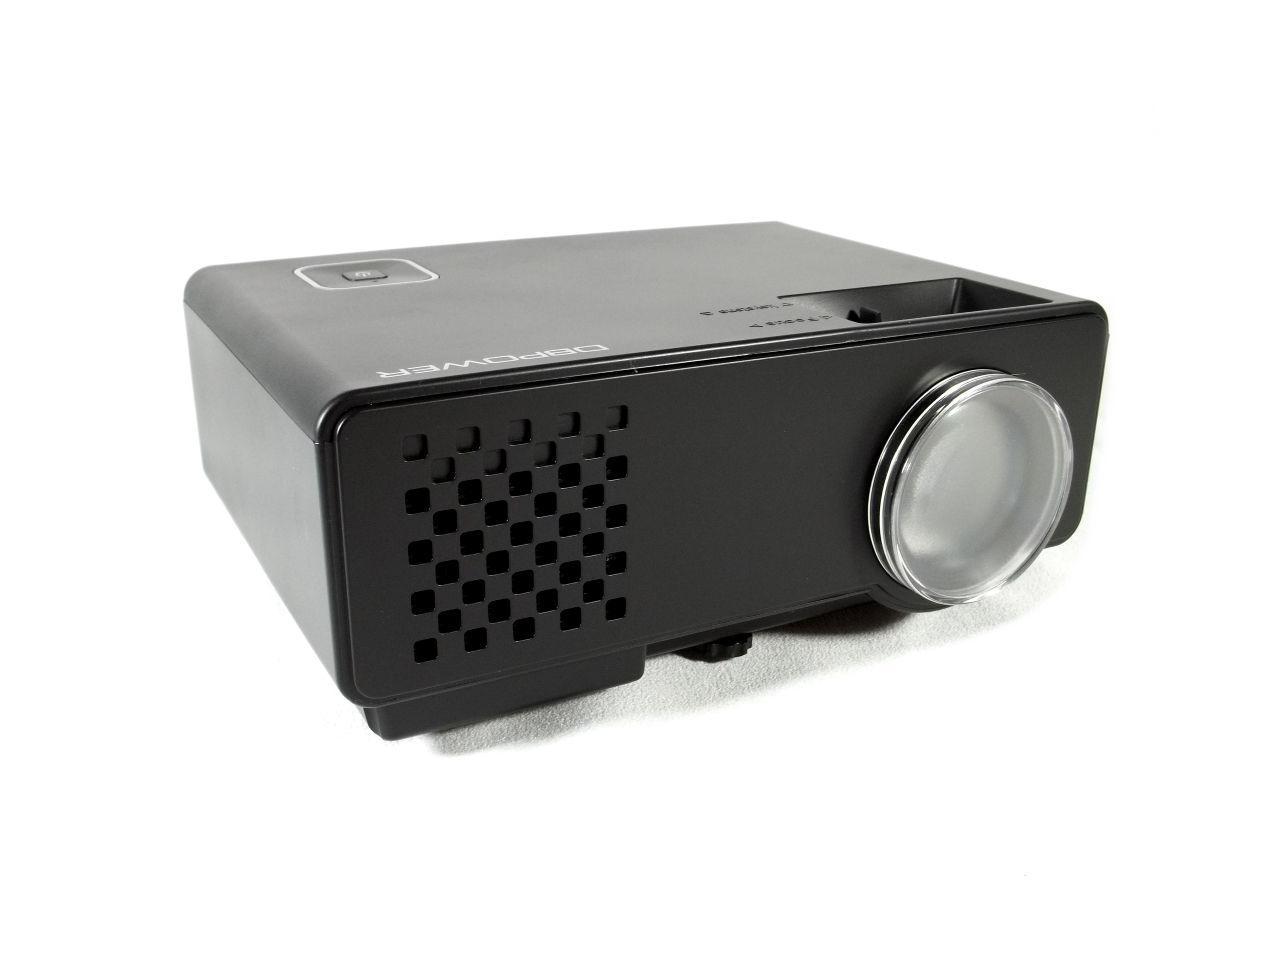 Dbpower rd 810 1200 lumens led portable projector review for Highest lumen pocket projector